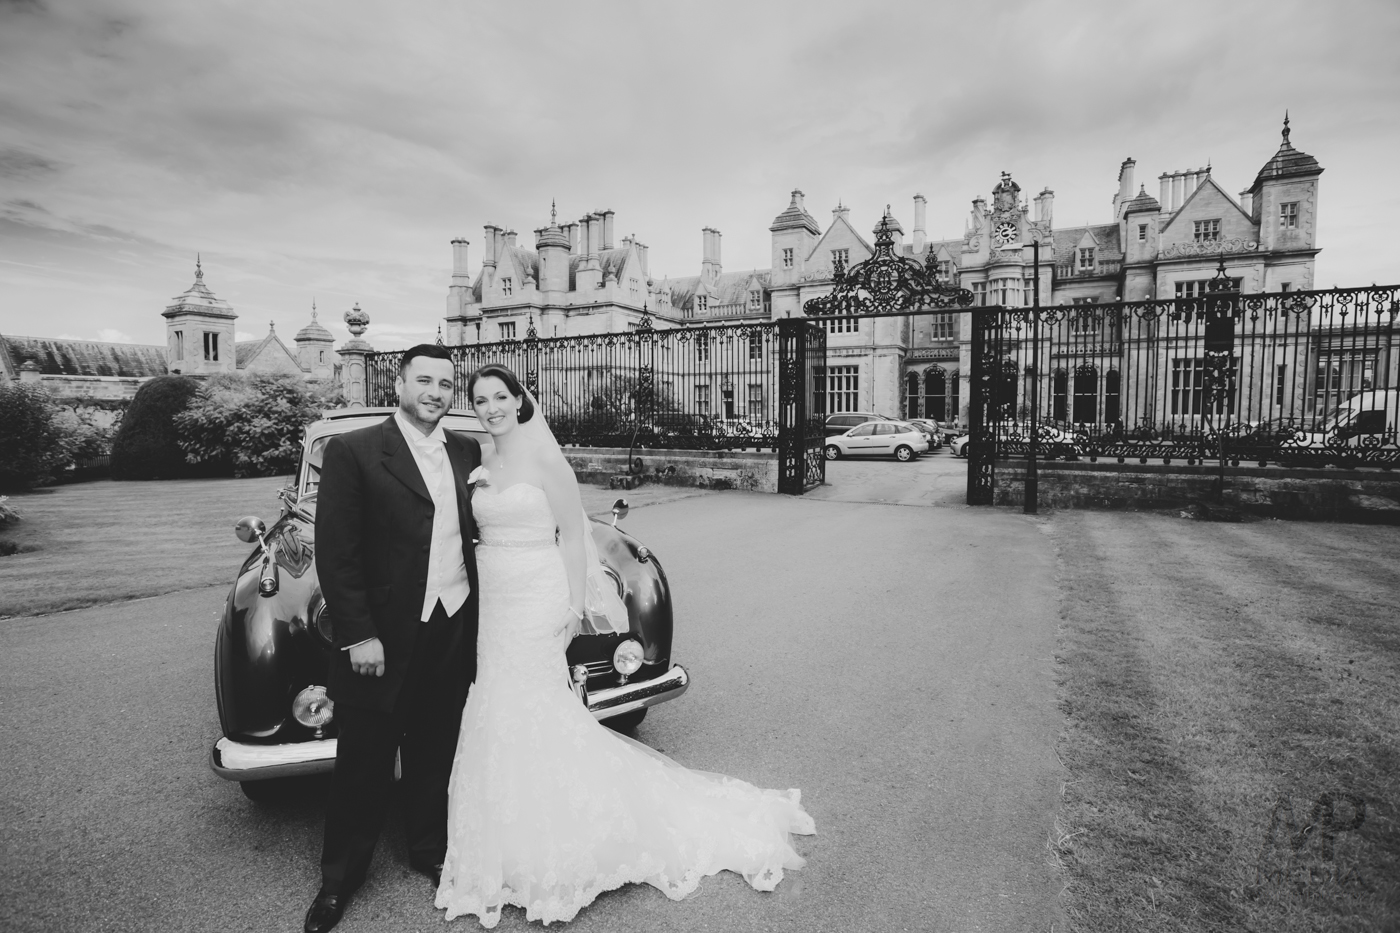 094 - Natalie and Kevals Fine Art Wedding Photography Stoke Rochford Hall by Pamela and Mark Pugh Team MP - www.mpmedia.co.uk - Do NOT remove the watermark or edit this image without consent -341.JPG